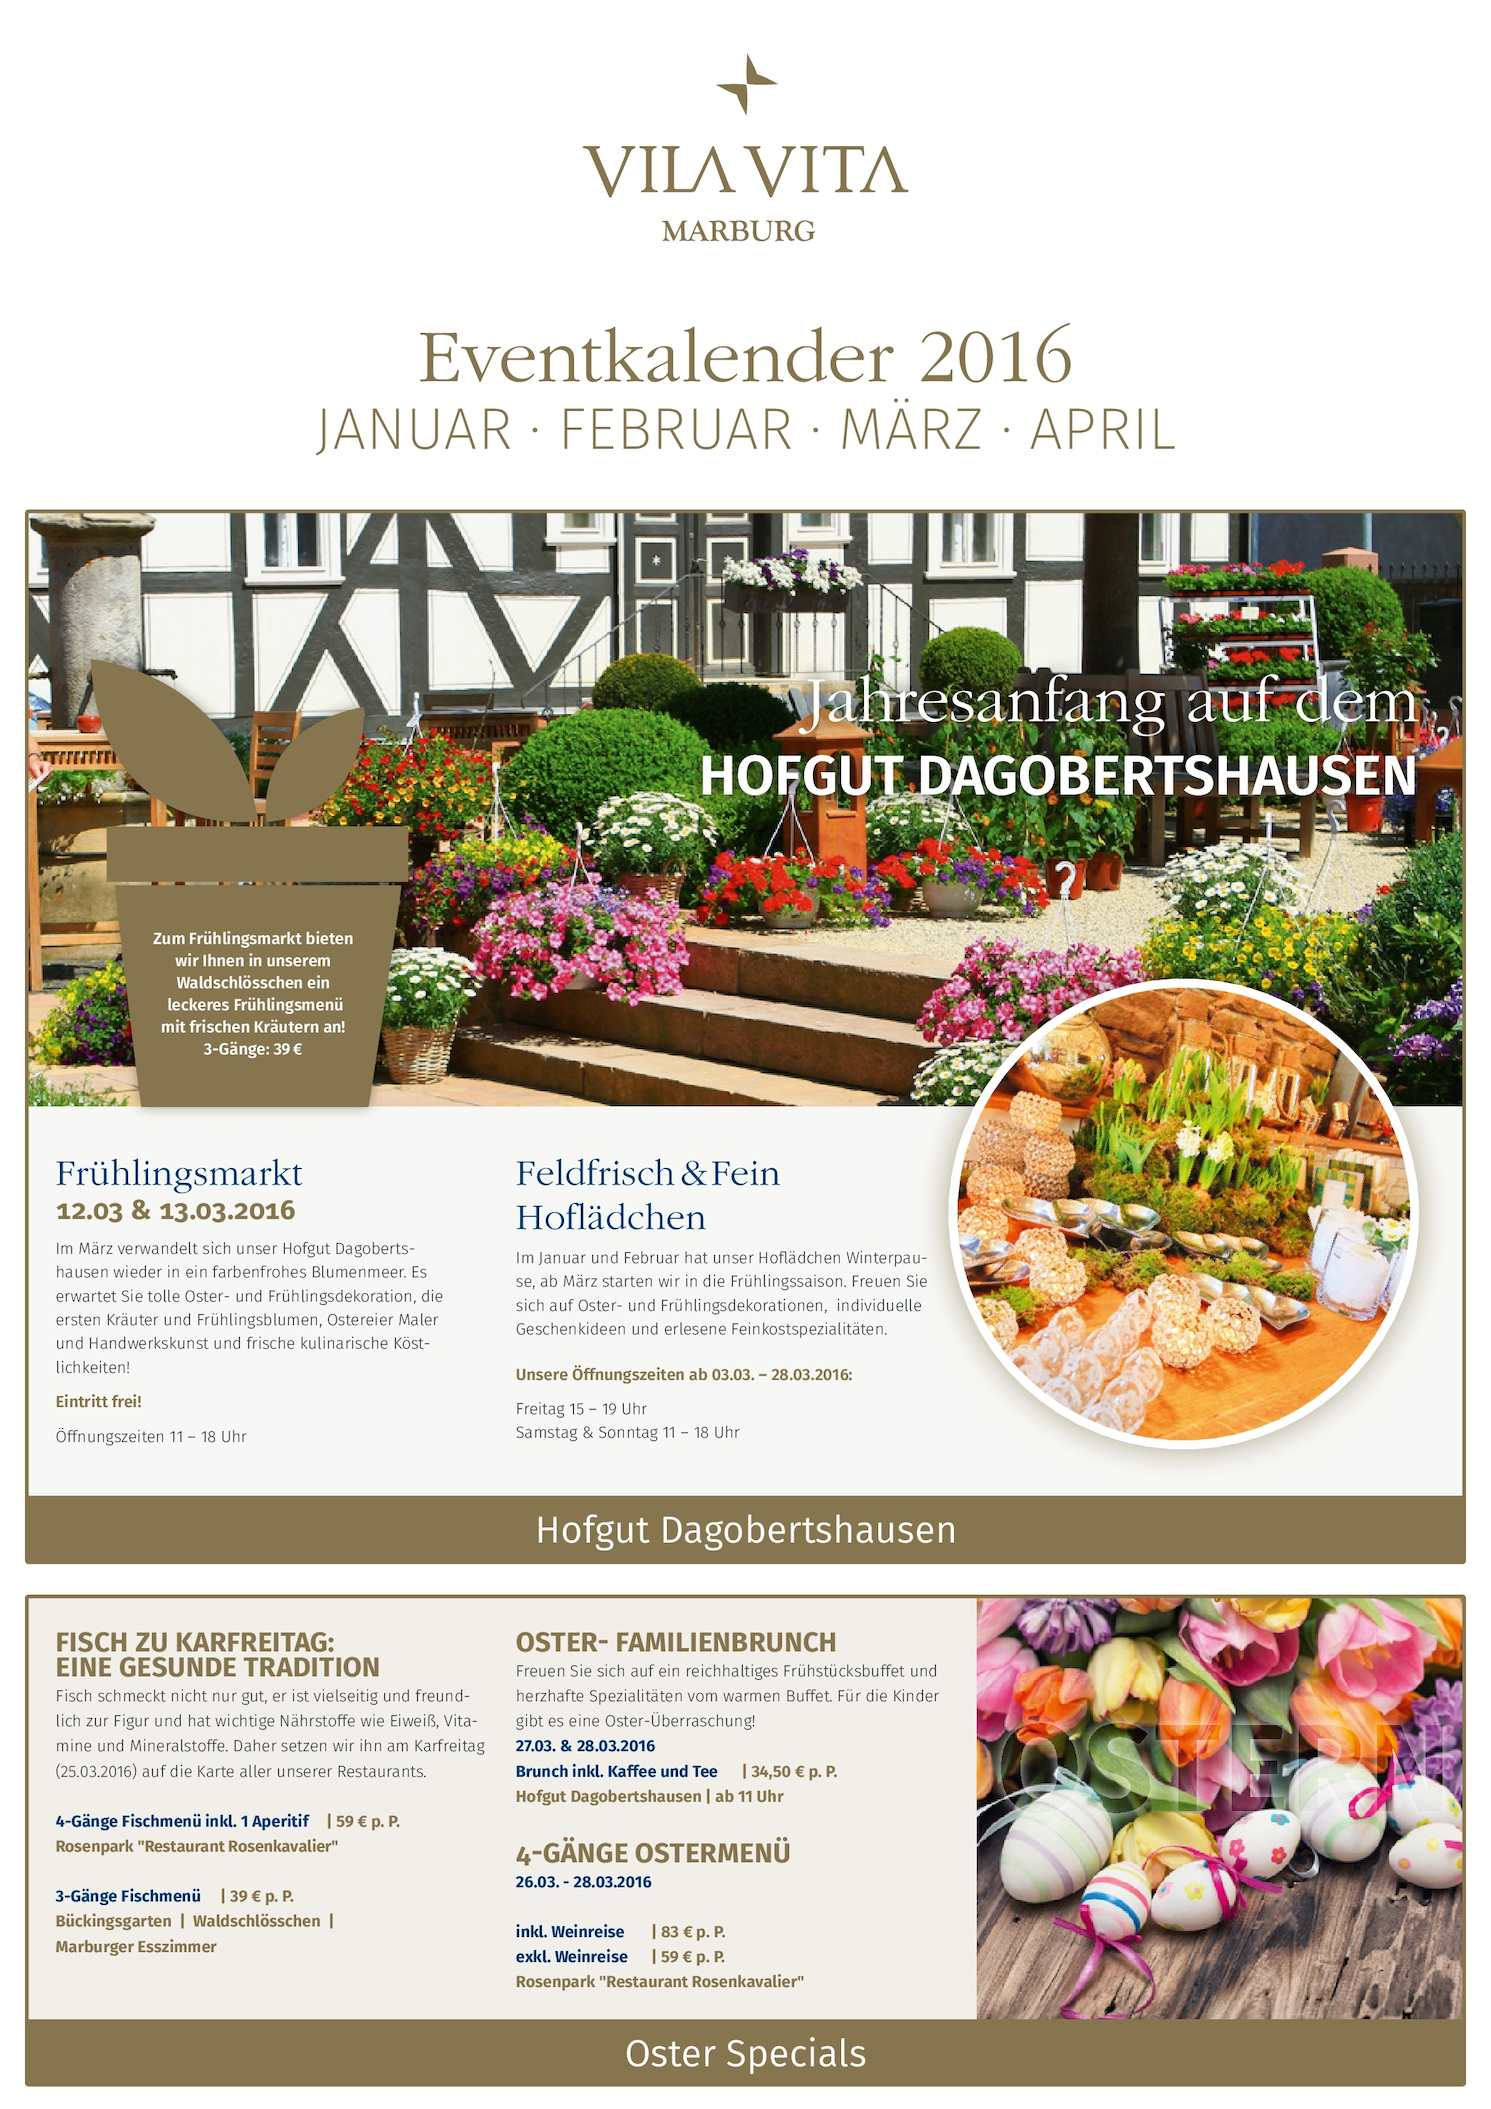 Esszimmer Marburg Calaméo Eventkalender Vila Vita Marburg Jan April 2016